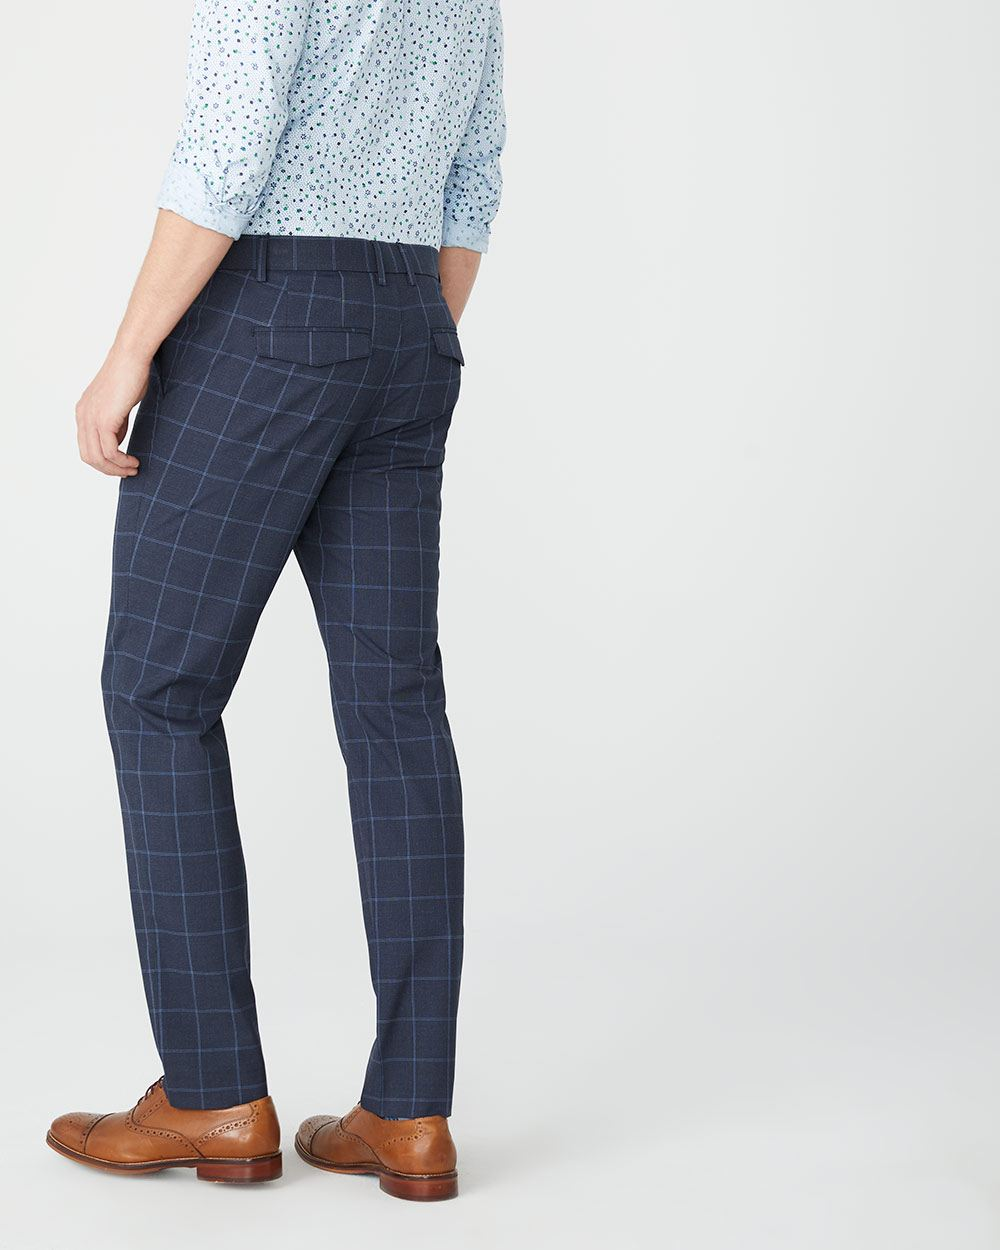 Slim fit navy windowpane City Pant